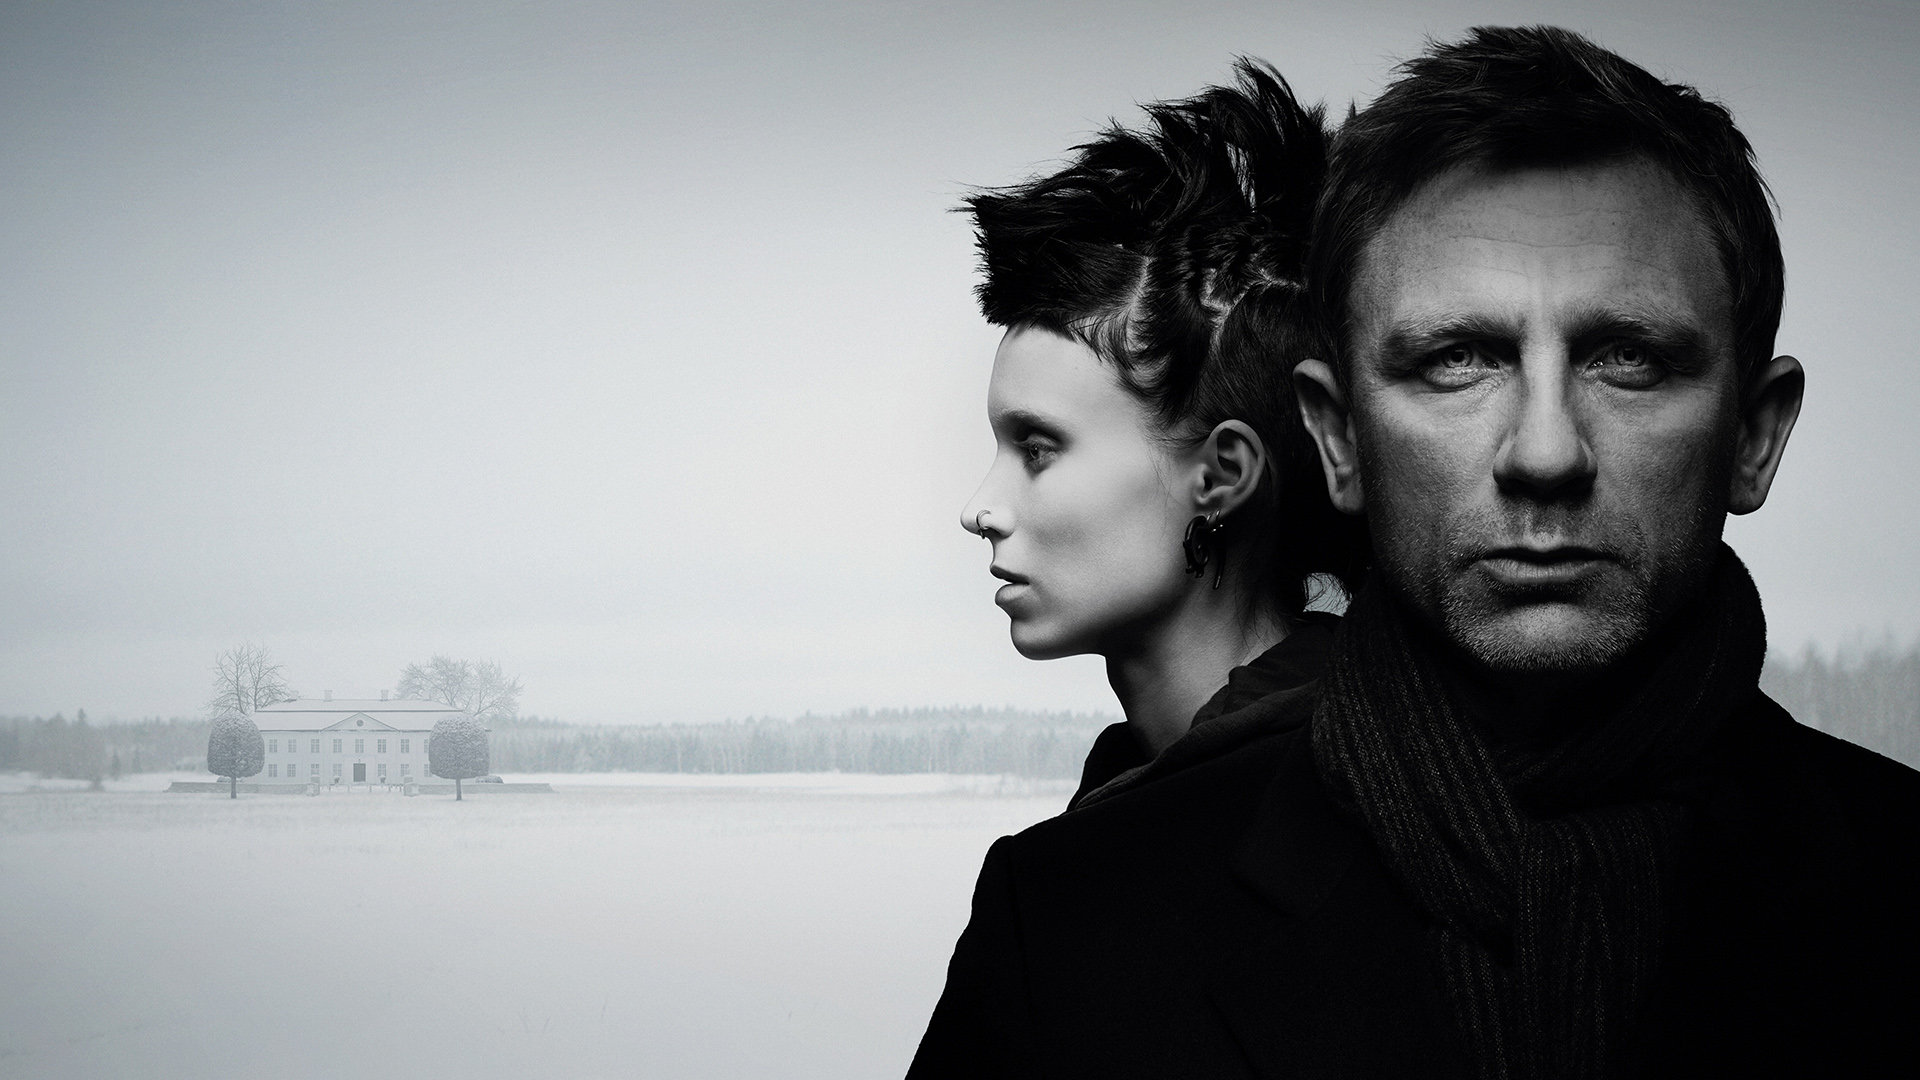 The Girl With The Dragon Tattoo Wallpapers 1920x1080 Full Hd